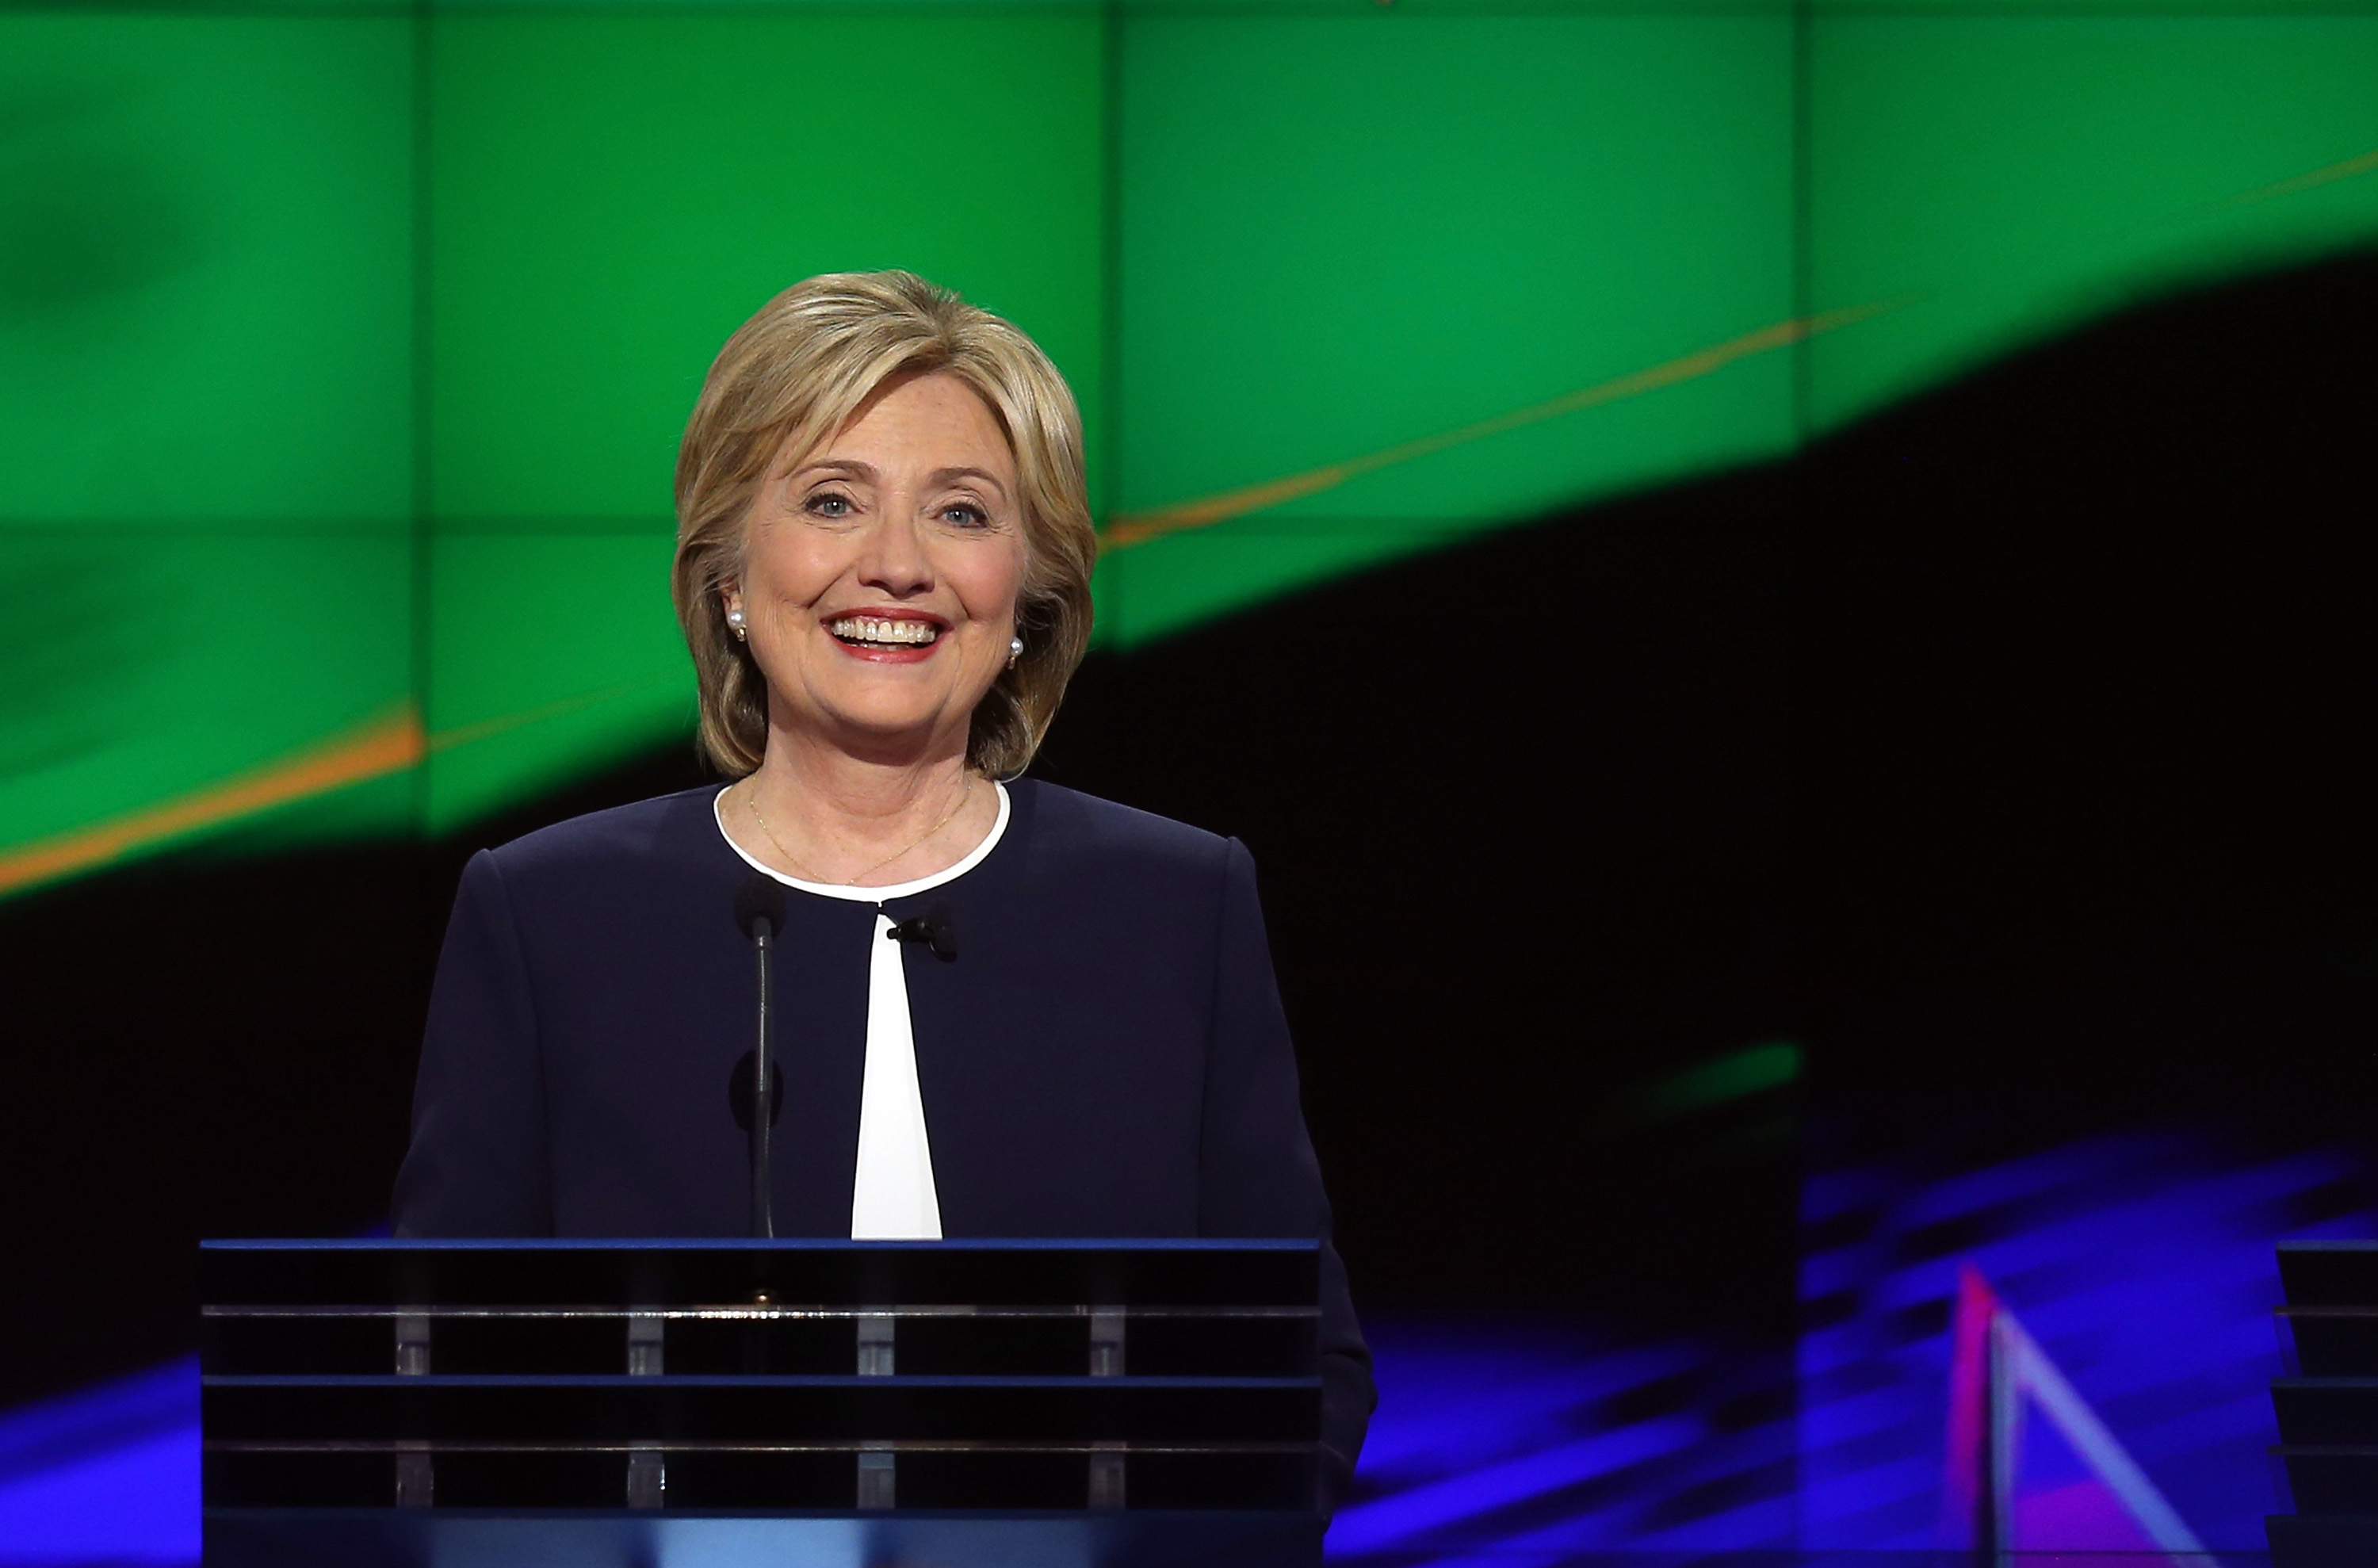 Hillary Clinton takes part in a presidential debate sponsored by CNN and Facebook at Wynn Las Vegas on Oct. 13, 2015 in Las Vegas.